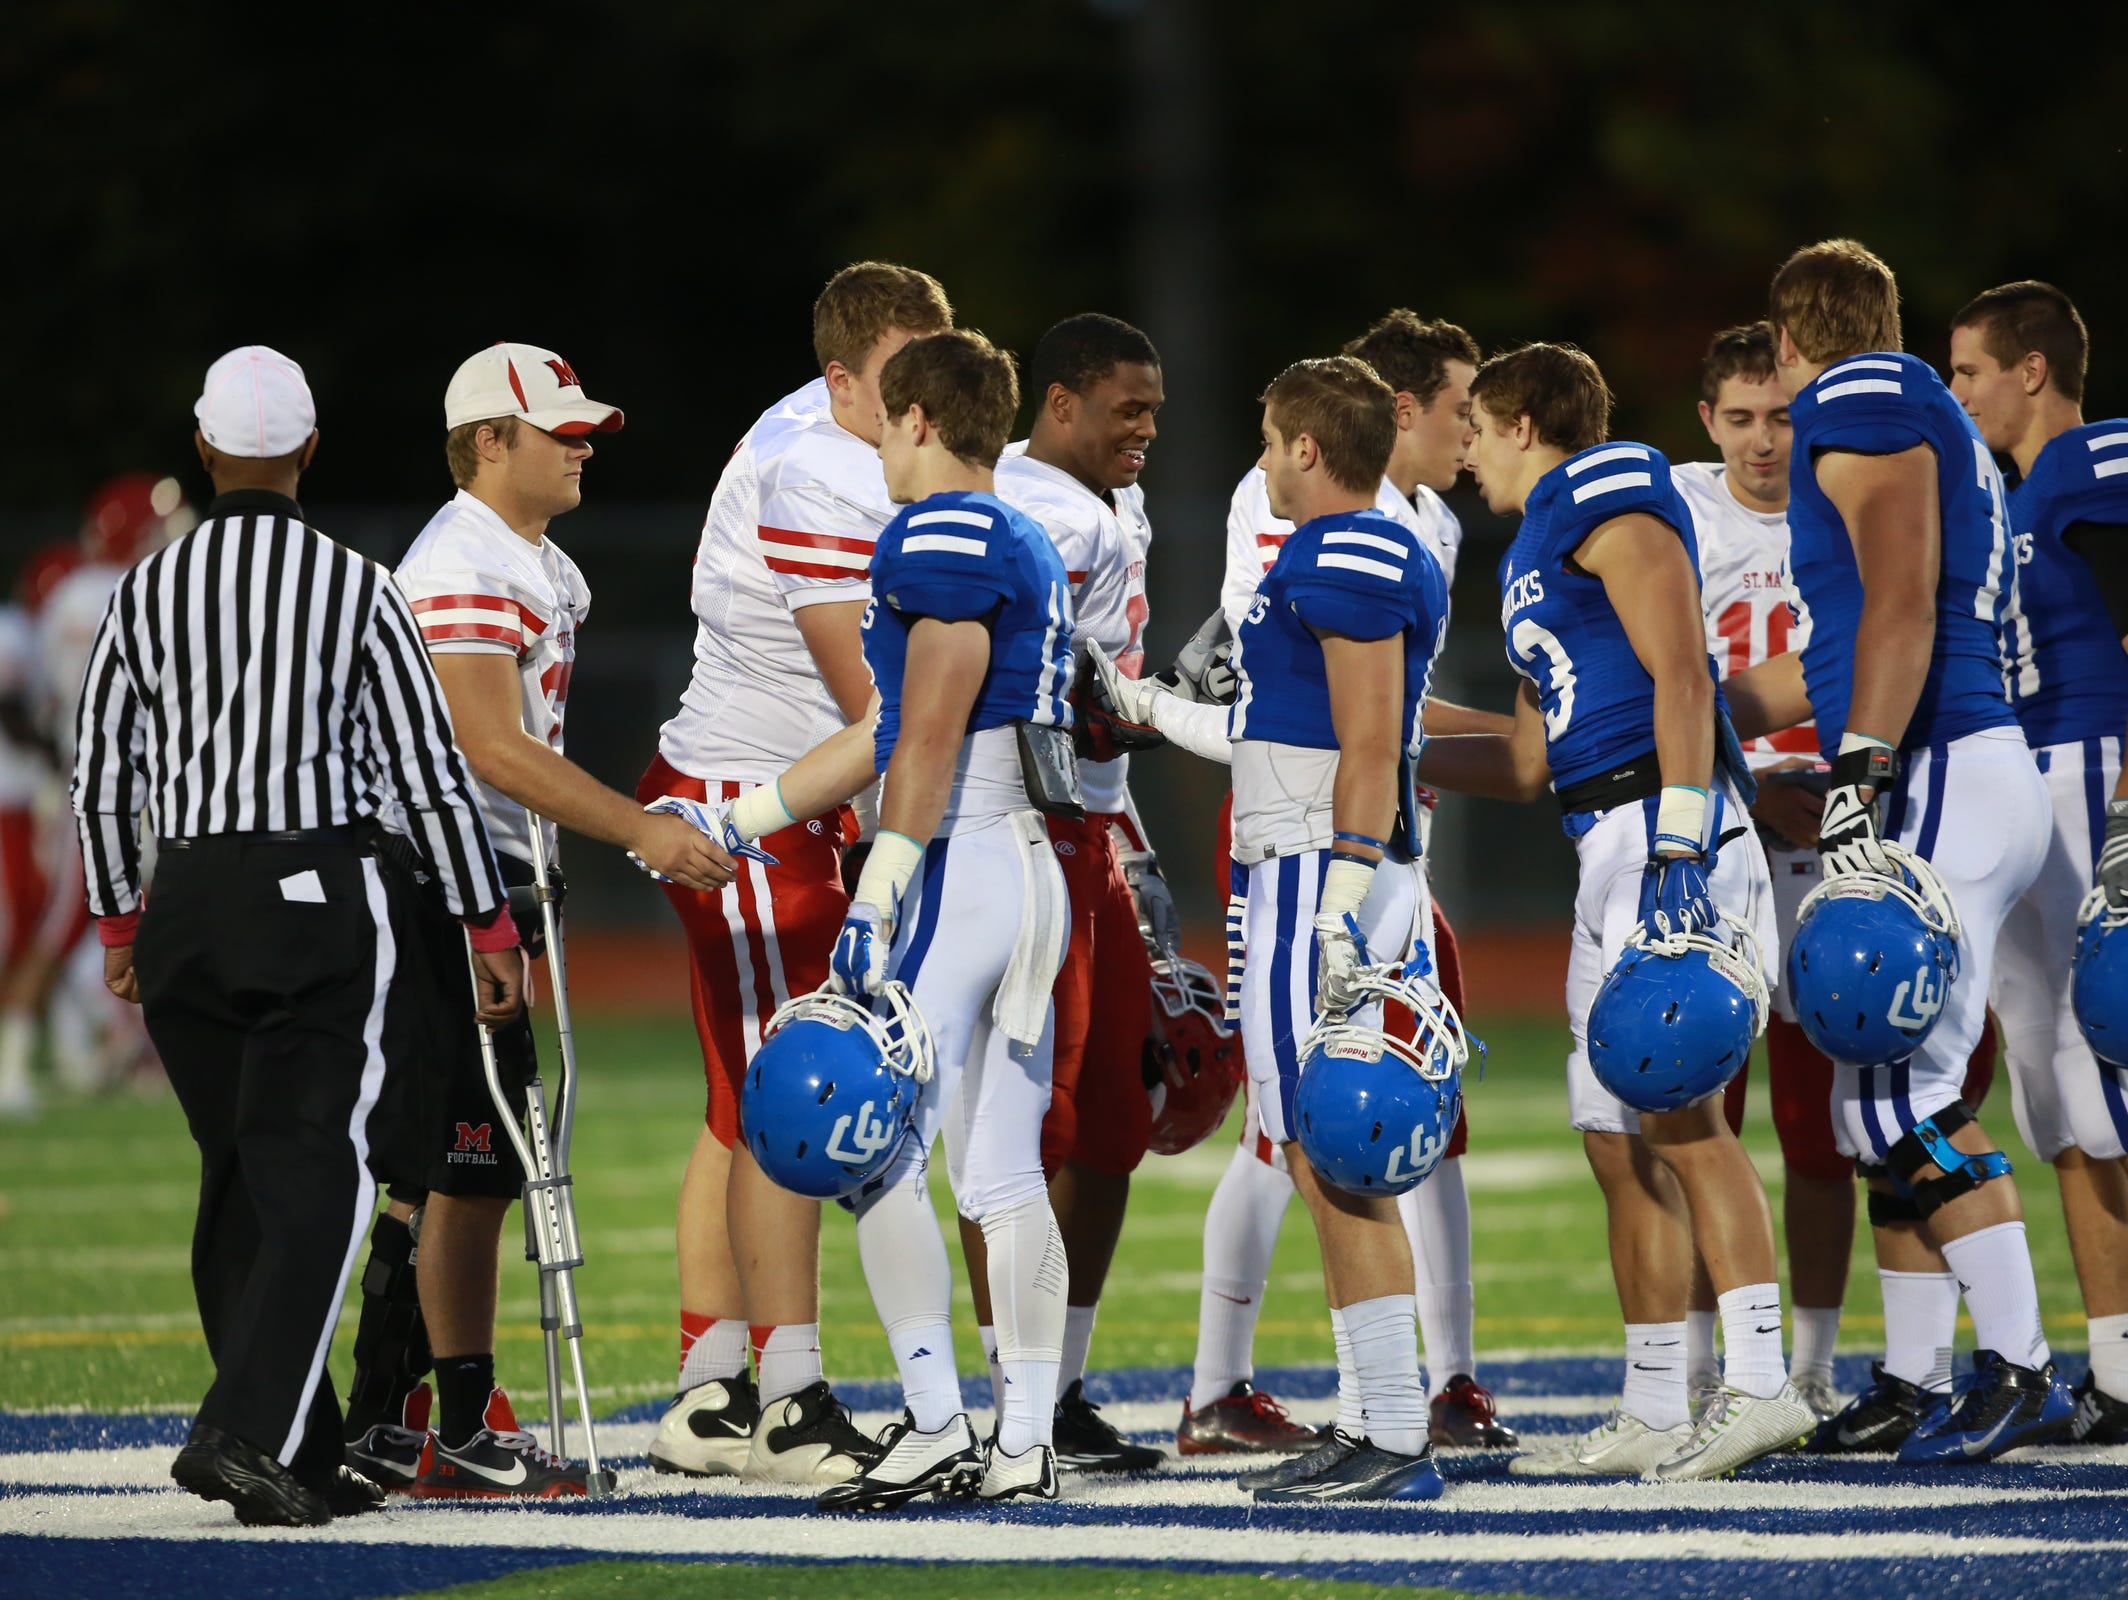 Orchard Lake St. Mary's at Novi Detroit Catholic Central shake hands before the start of their game in Novi, Mich. on Friday, Oct. 9, 2015.